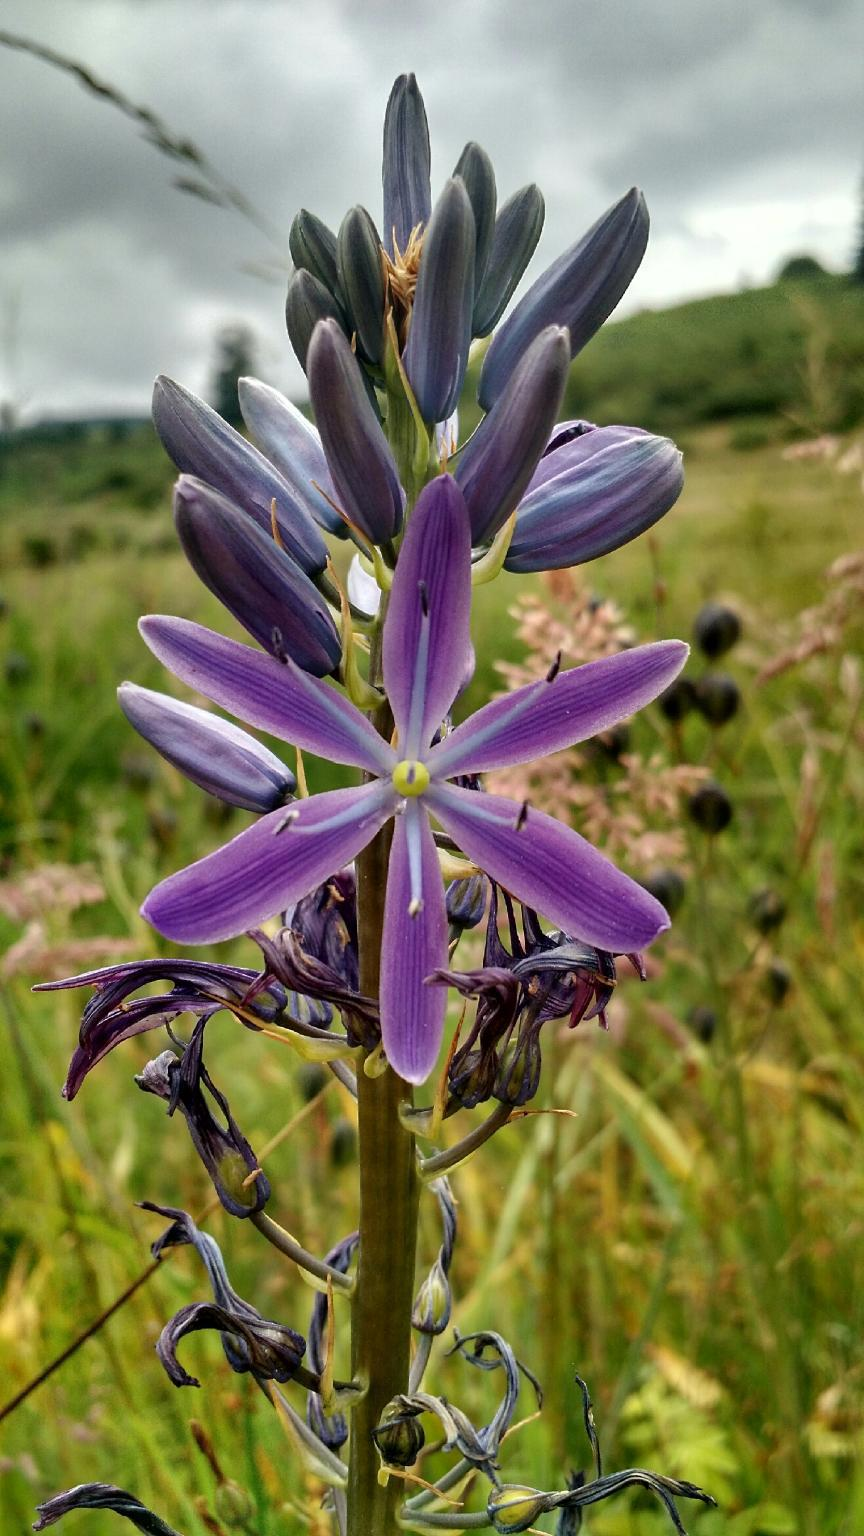 Camas flower in ODOT Region 3, which includes Douglas, Coos and Curry counties. (Worsley, ODOT/CC by 2.0)<p></p>